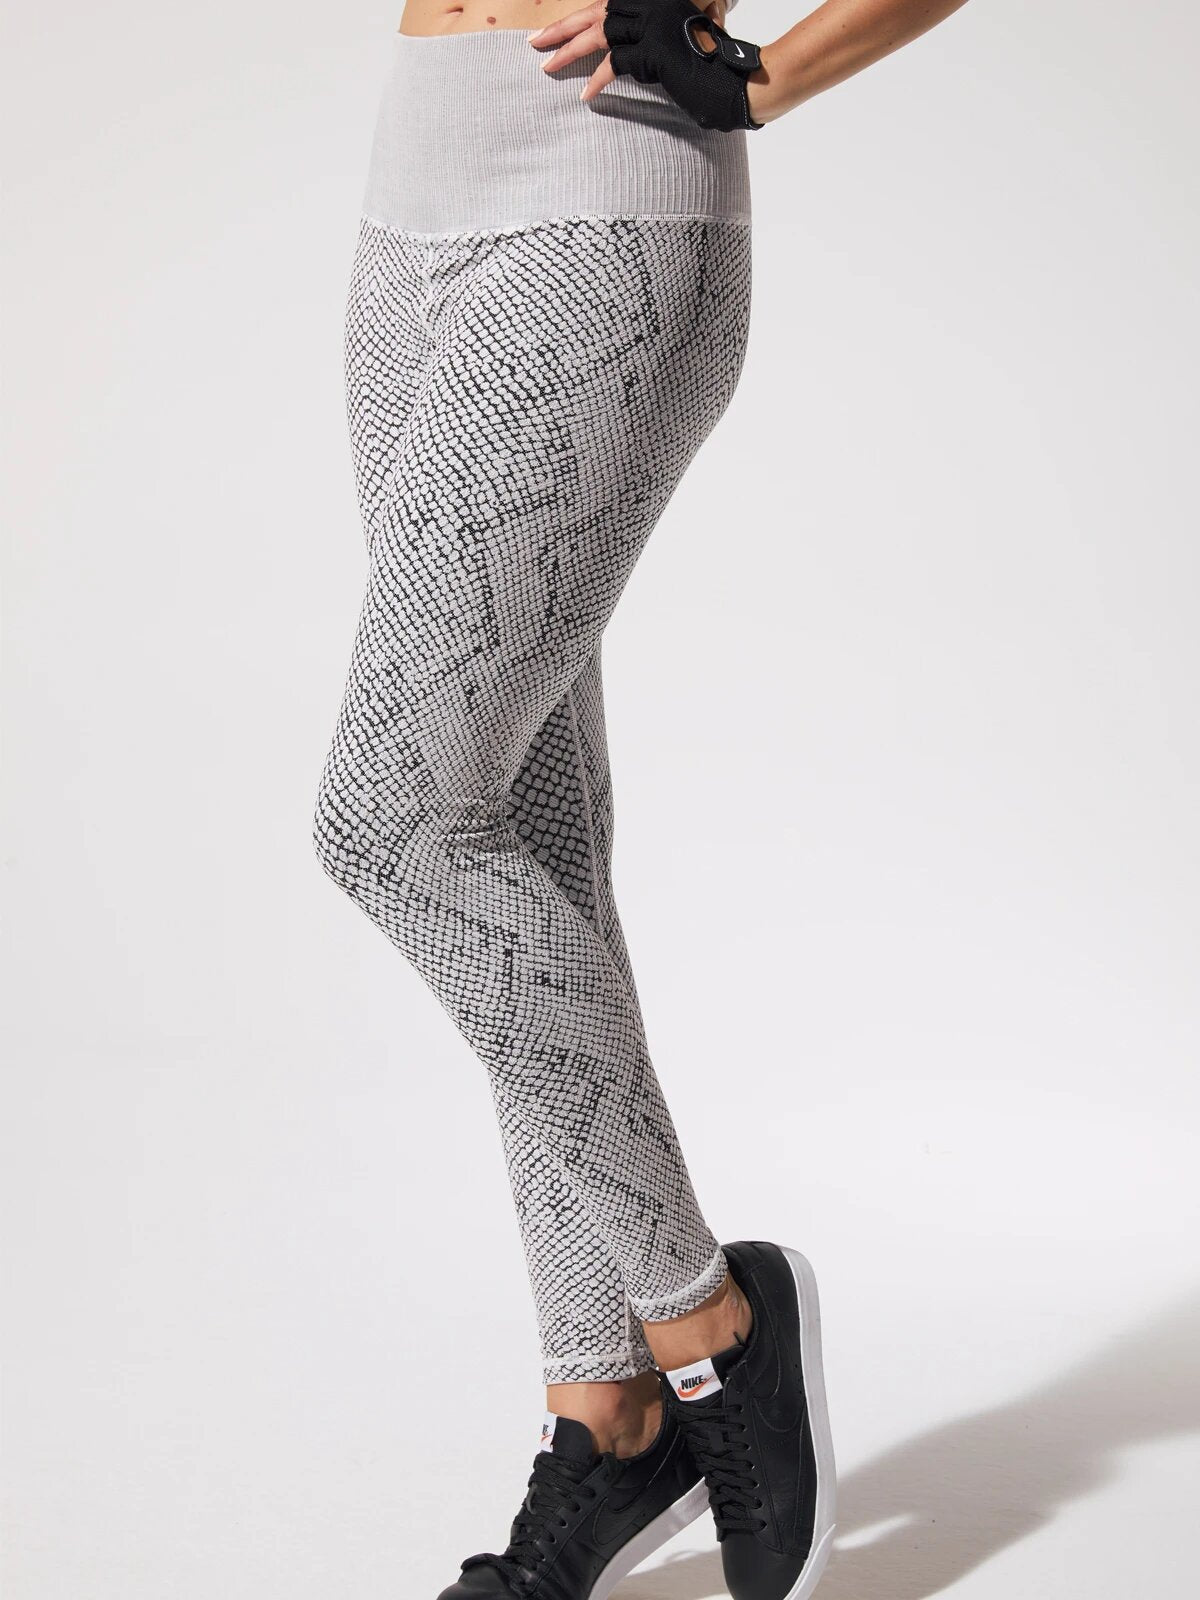 Snake Fire Legging Vintage in Vintage Cool Grey